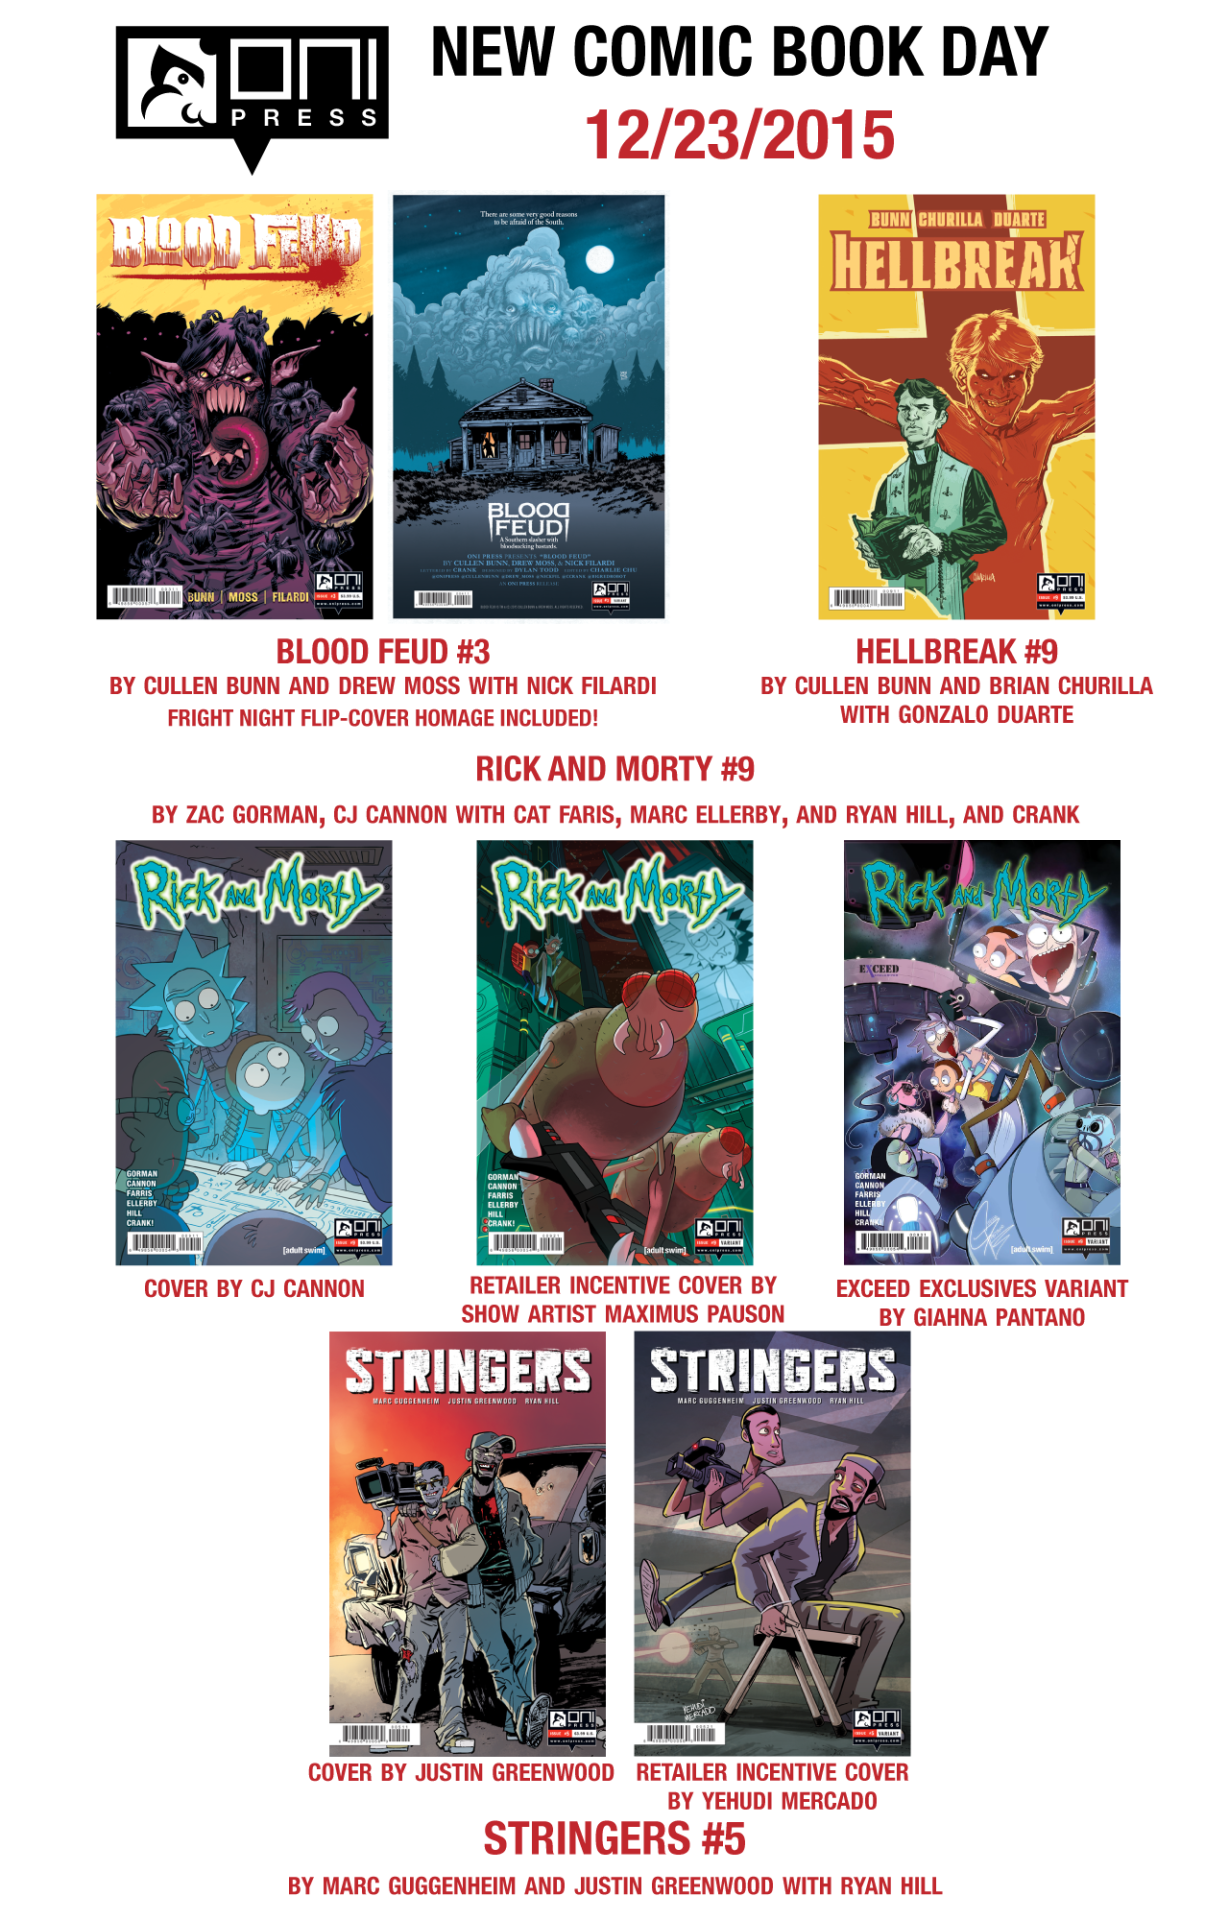 onipress :     Happy New Comic Book Day! Out this week is:       BLOOD FEUD #3   by  Cullen Bunn  and  @drew-moss  with  @nickfilardi        HELLBREAK #9   by  Cullen Bunn  and  @brianchurilla  with Gonzalo Duarte      RICK AND MORTY #9   by  @zacgormania  and  CJ Cannon  with  Cat Farris ,  @marcellerby ,  Ryan Hill , and  CRANK !    Main cover by  CJ Cannon     Retailer incentive cover by  Rick and Morty  show artist  @maximusjpauson       Exceed Exclusives  variant cover by  @icecry         STRINGERS #5   (the finale!) by  Marc Guggenheim  and  @justingreenwood  with  Ryan Hill      Main cover by   @justingreenwood     Retailer incentive cover by  Yehudi Mercado       What are you excited to pick up this week? Find your local comic shop at  findacomicshop.com  or  comicshoplocator.com !      Woo hoo! Just in time for the holidays!